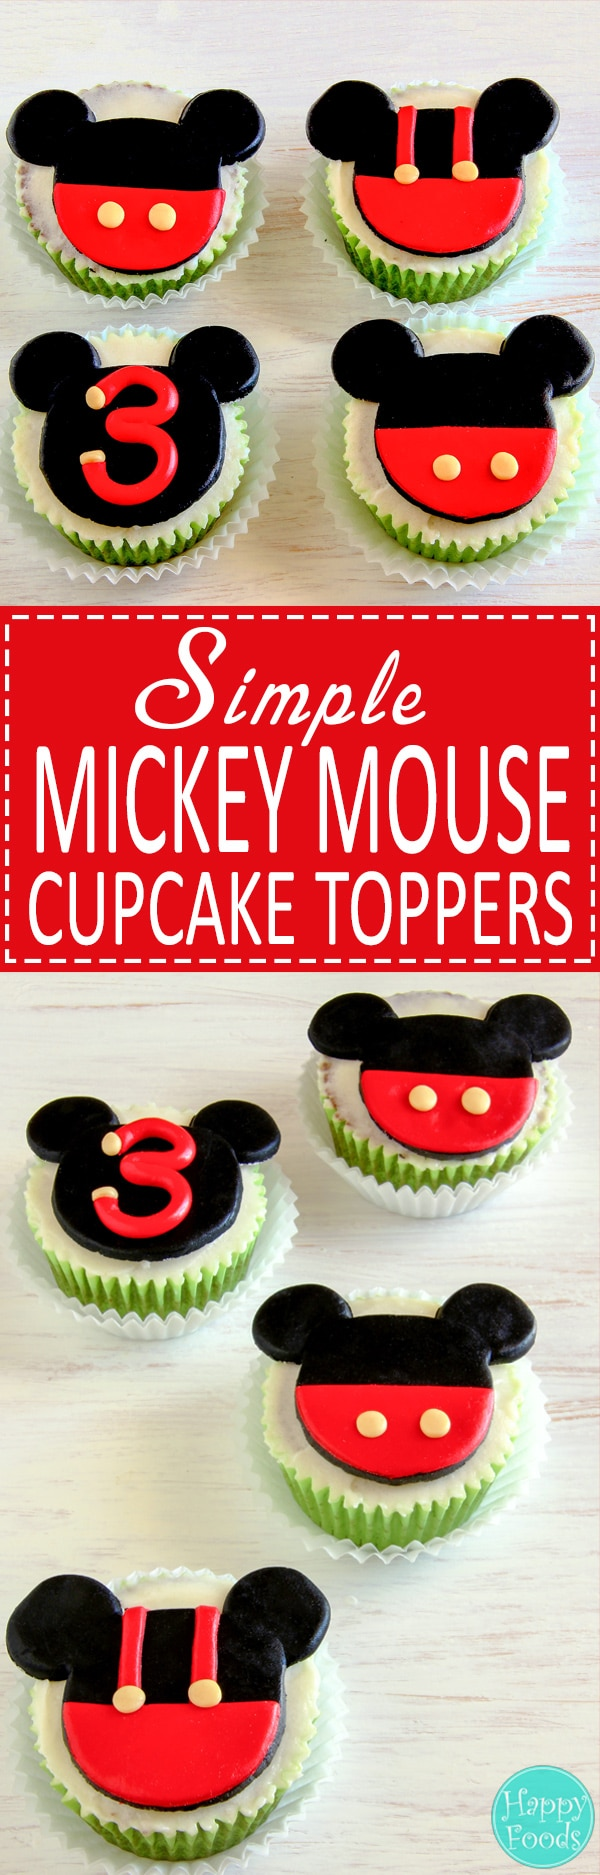 Mickey Mouse Fondant Cupcake Toppers Video Tutorial HappyFoods Tube